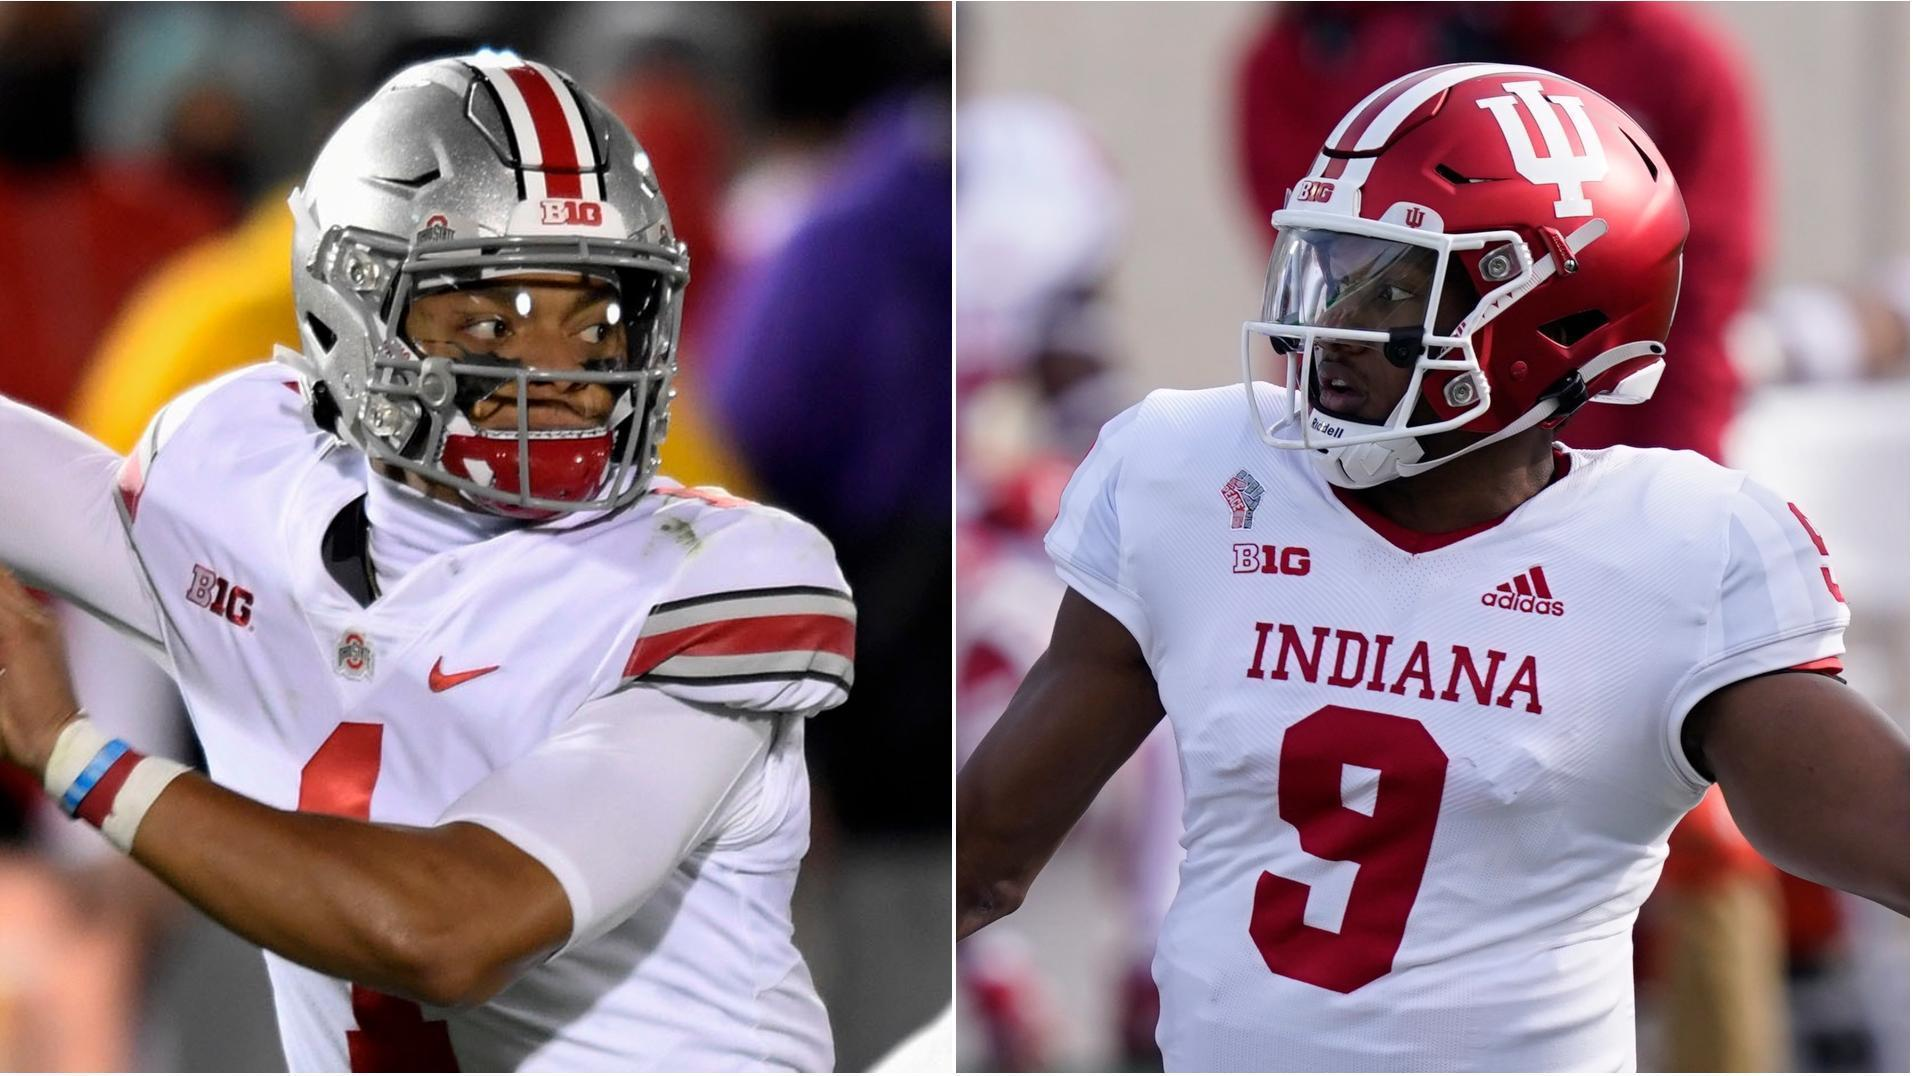 Will Indiana be Ohio State's biggest test?